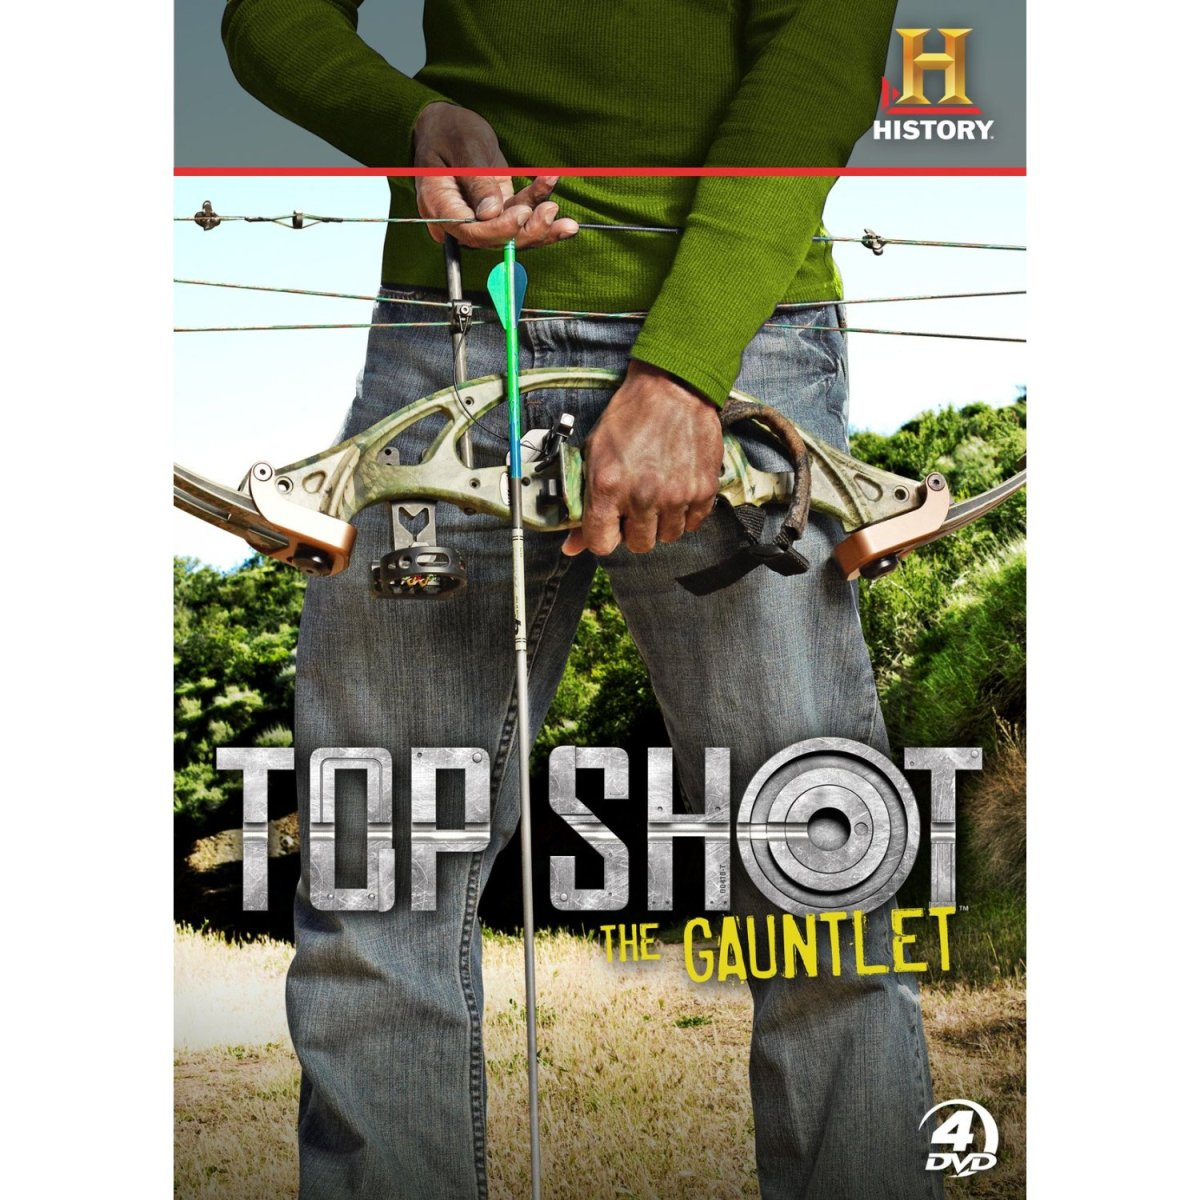 Top Shot: The Gauntlet – DVD Review